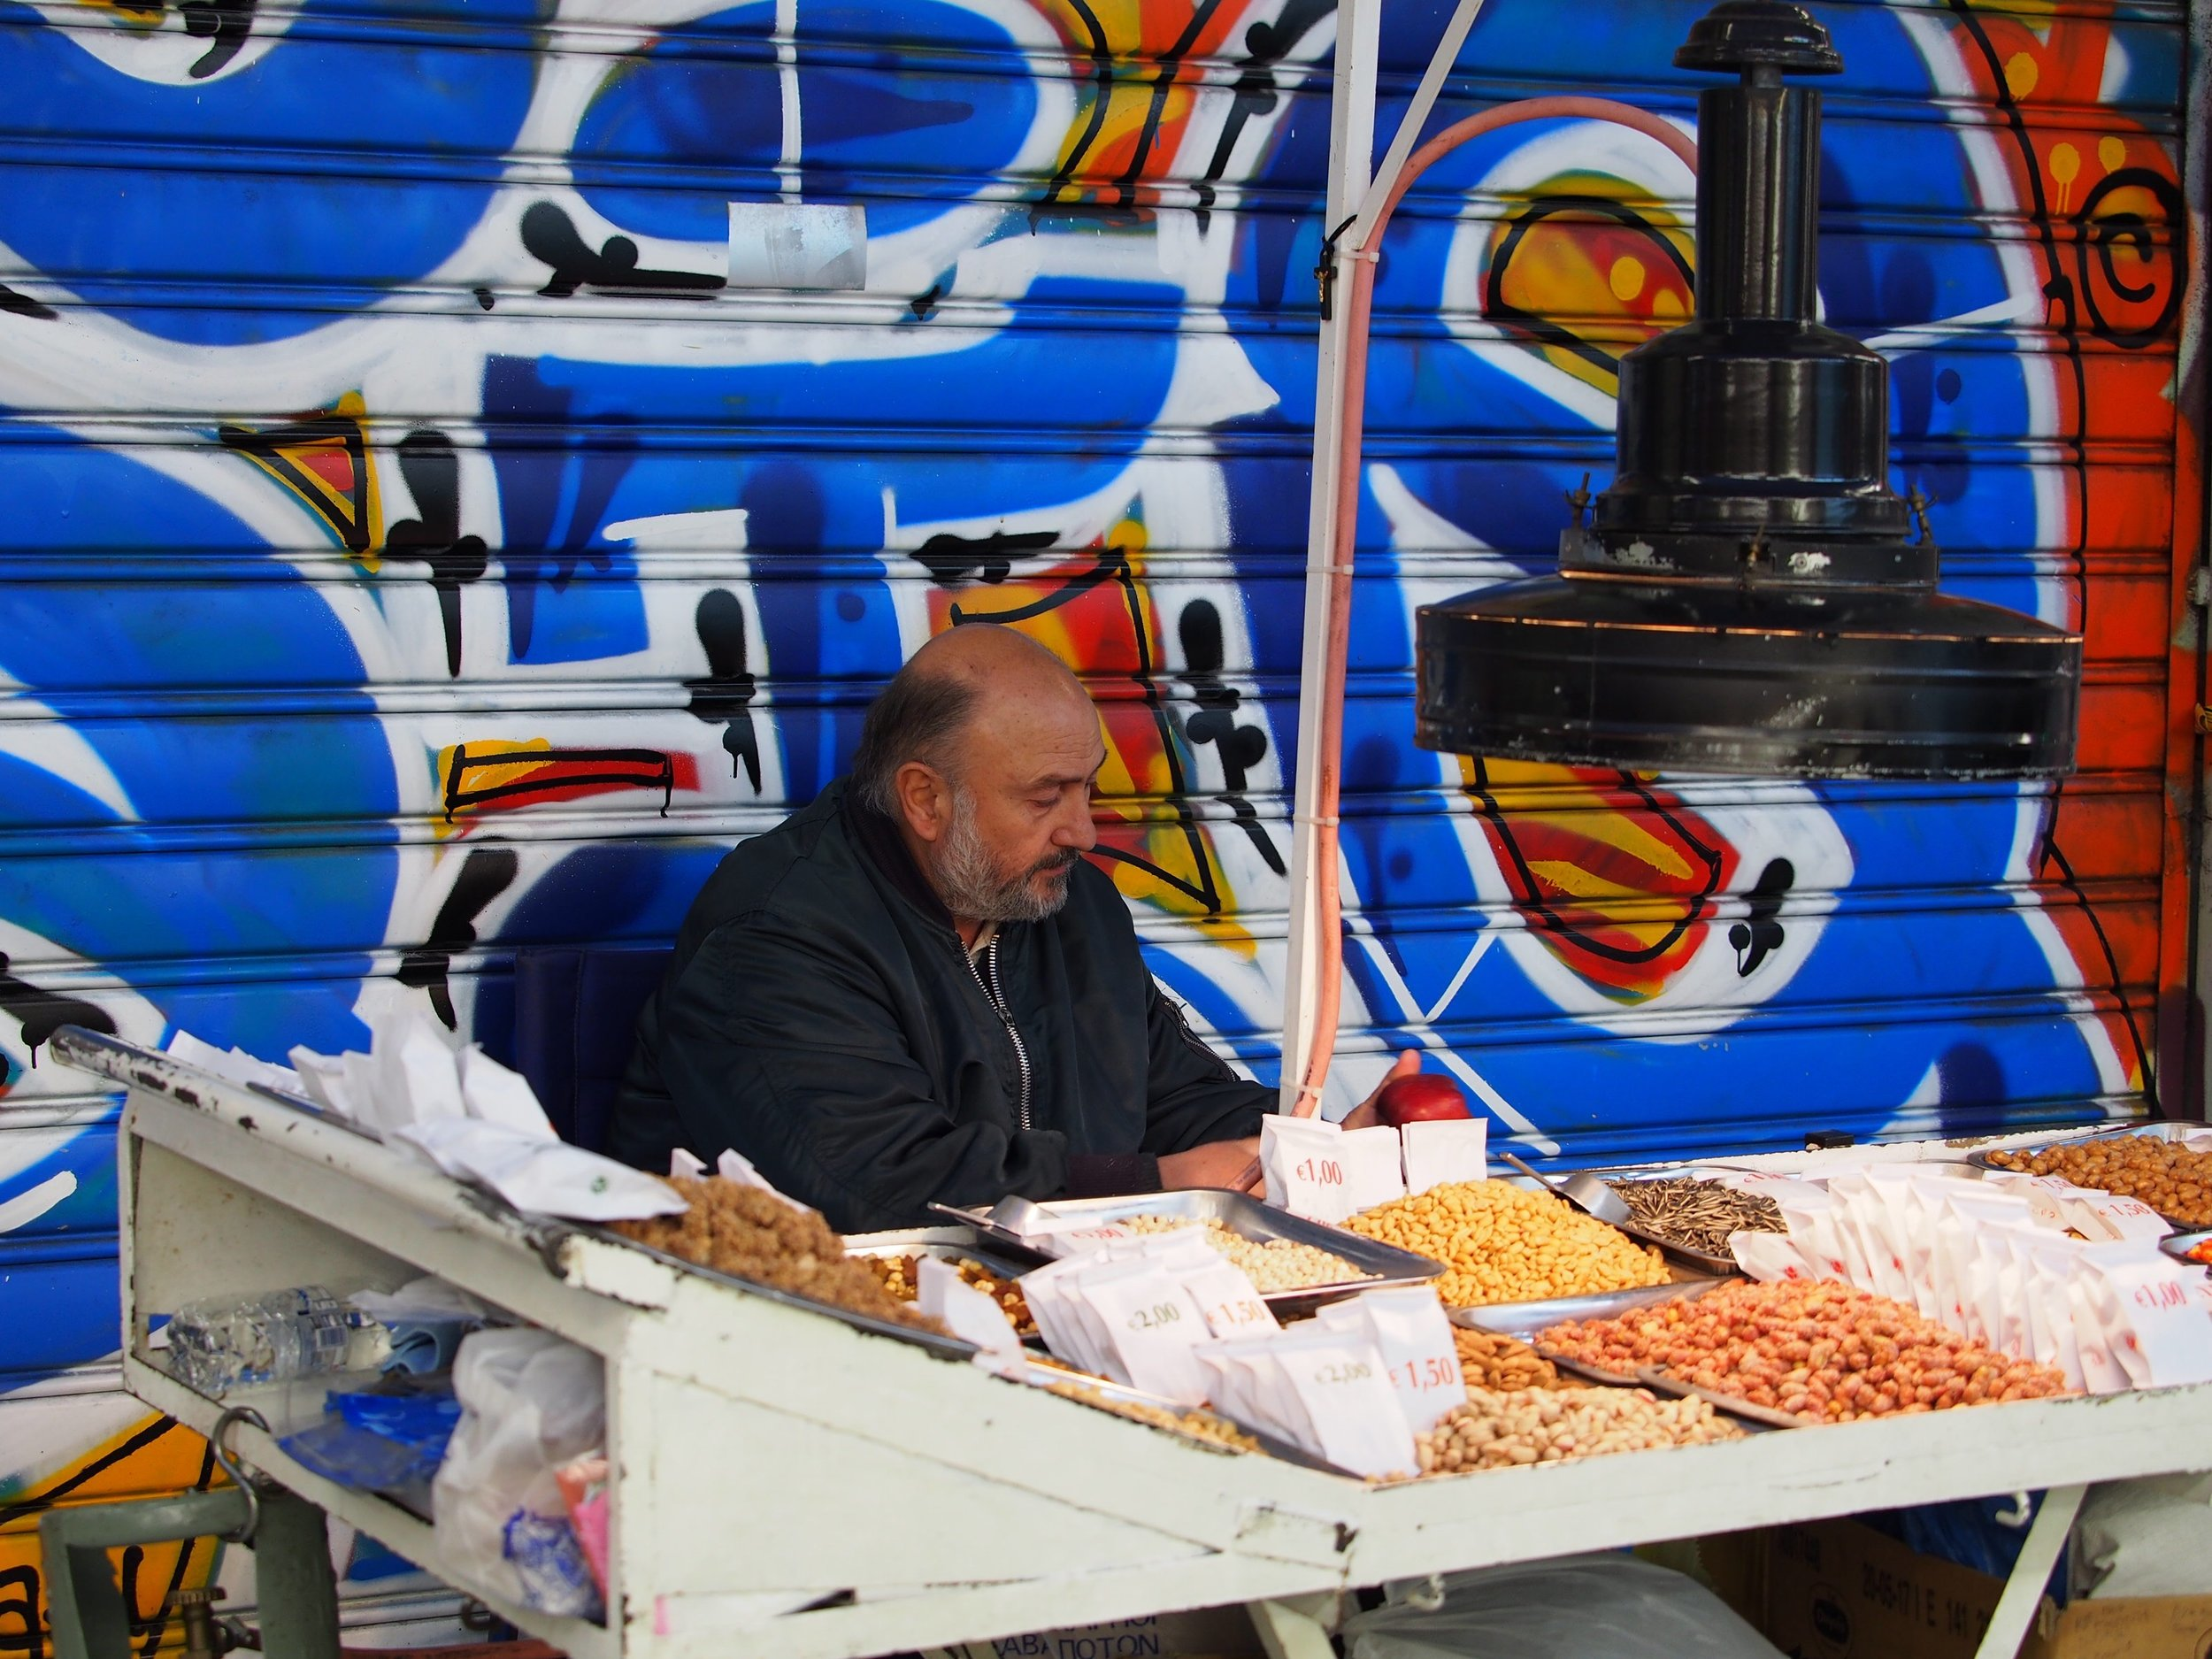 Nut seller in flea market near Monastiraki Square, Athens, November 2017.